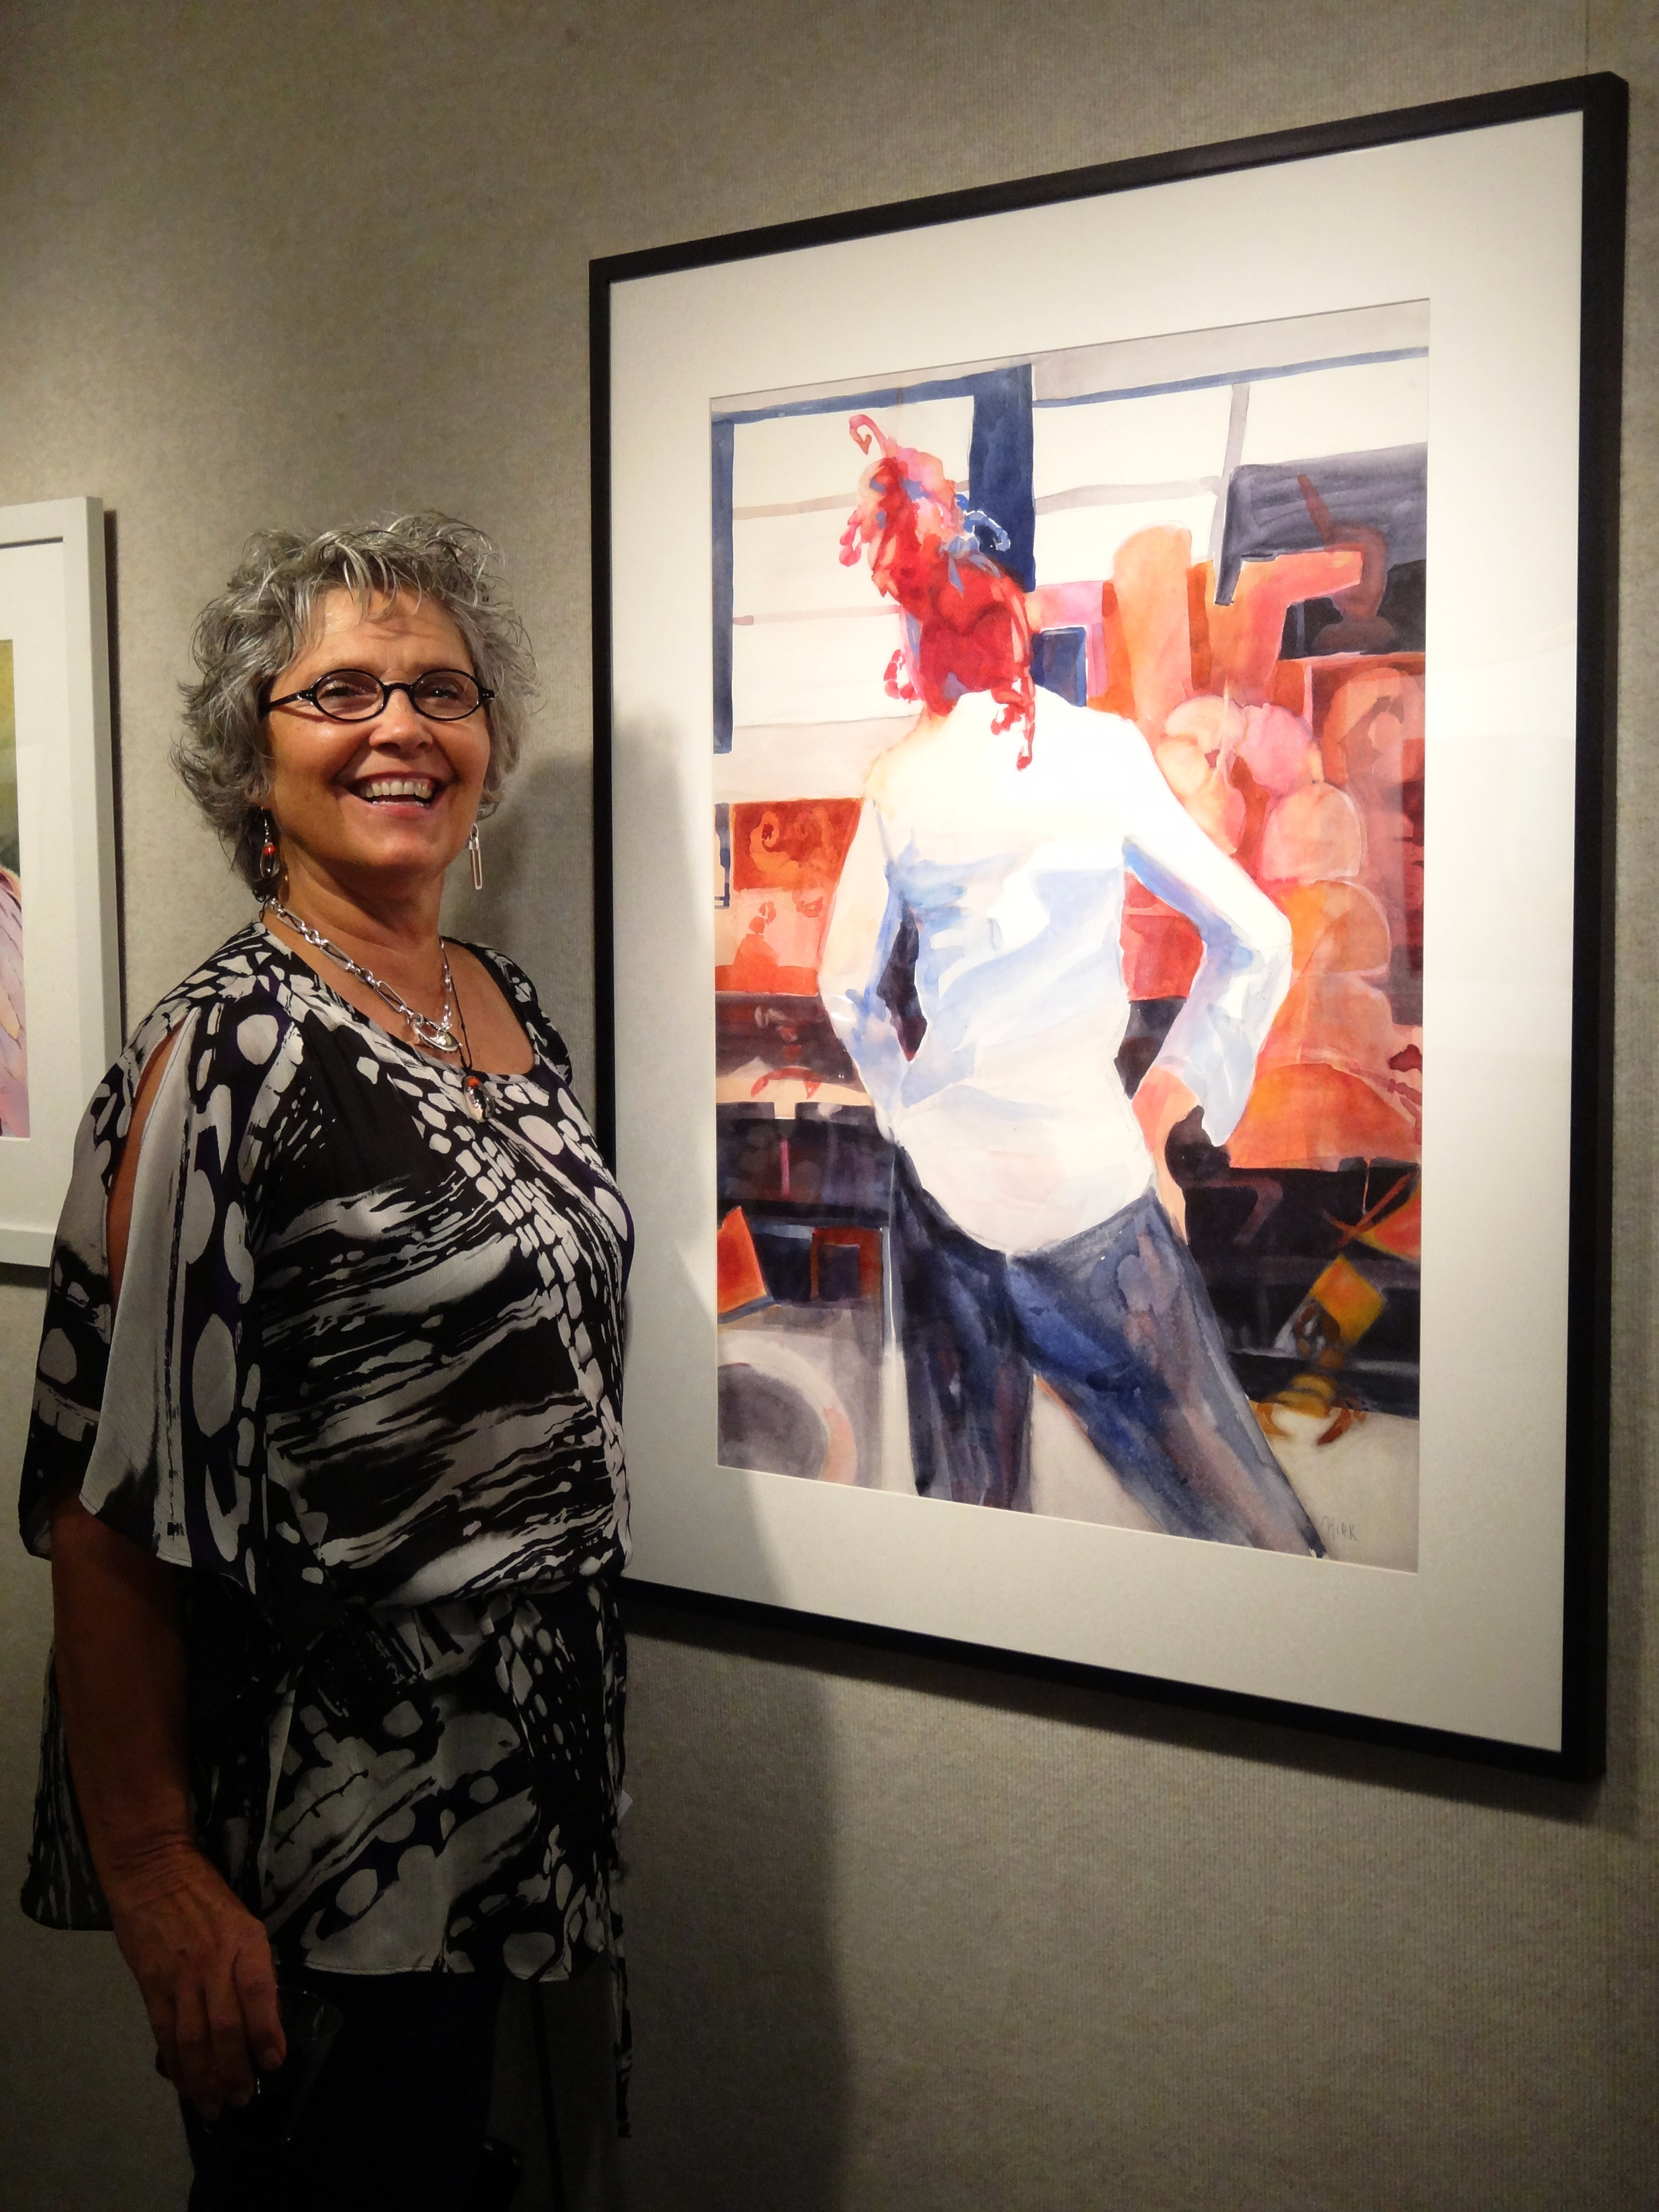 Friend Teresa Kirk with her painting, Scorpion VII, this painting also won an award in the show.